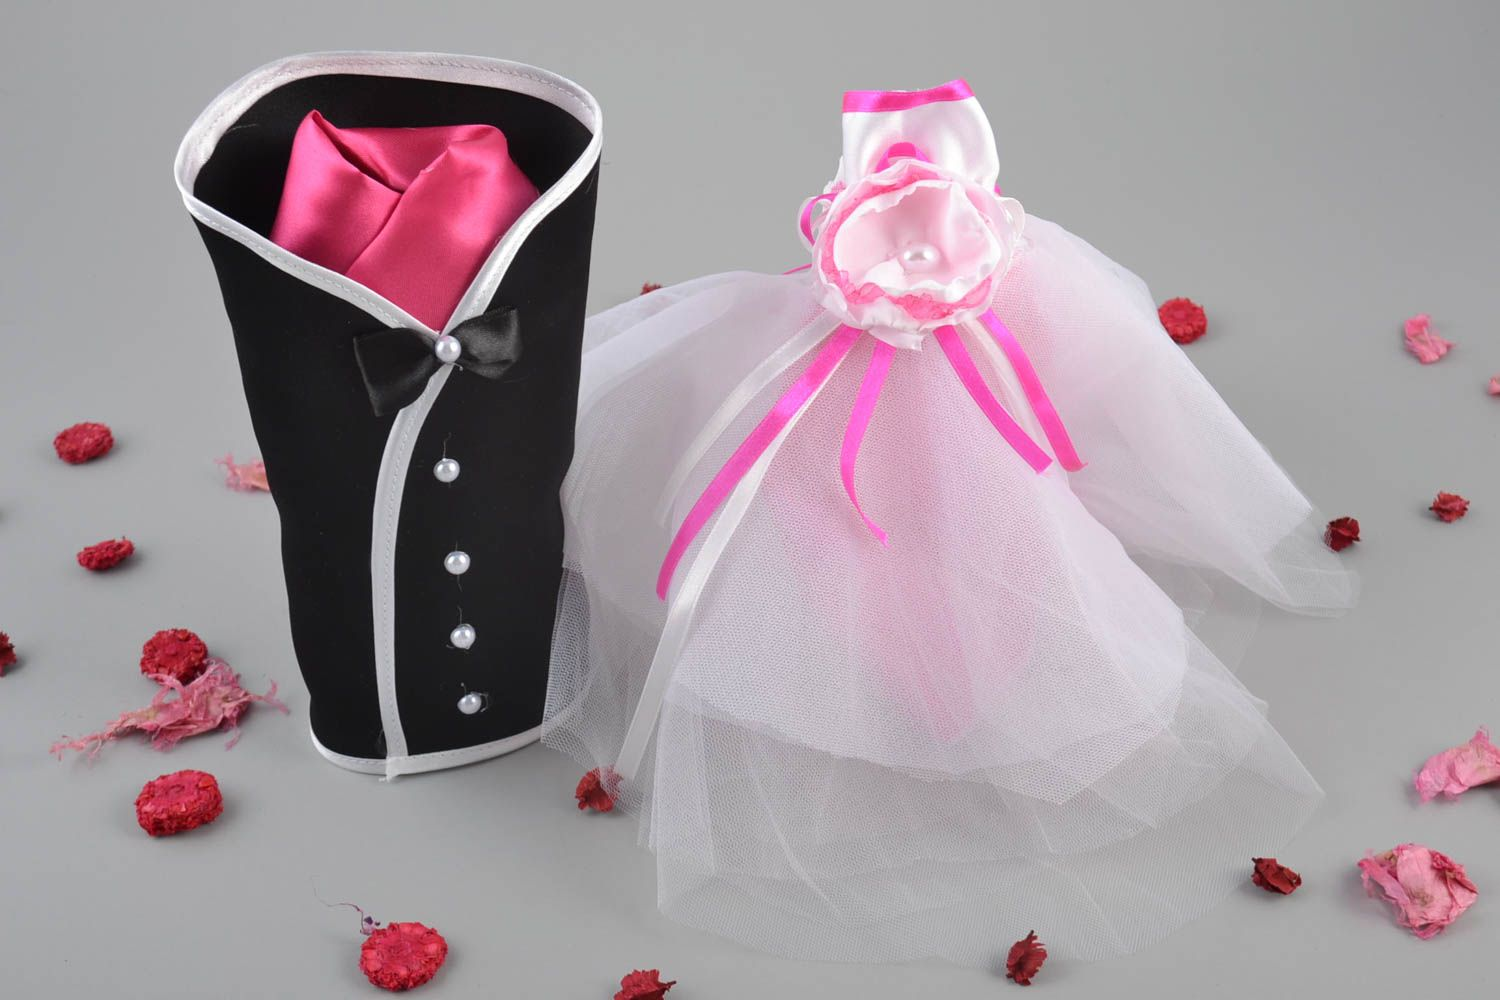 wedding accessories Handmade clothes groom and bride for champagne bottles set of 2 pieces - MADEheart.com